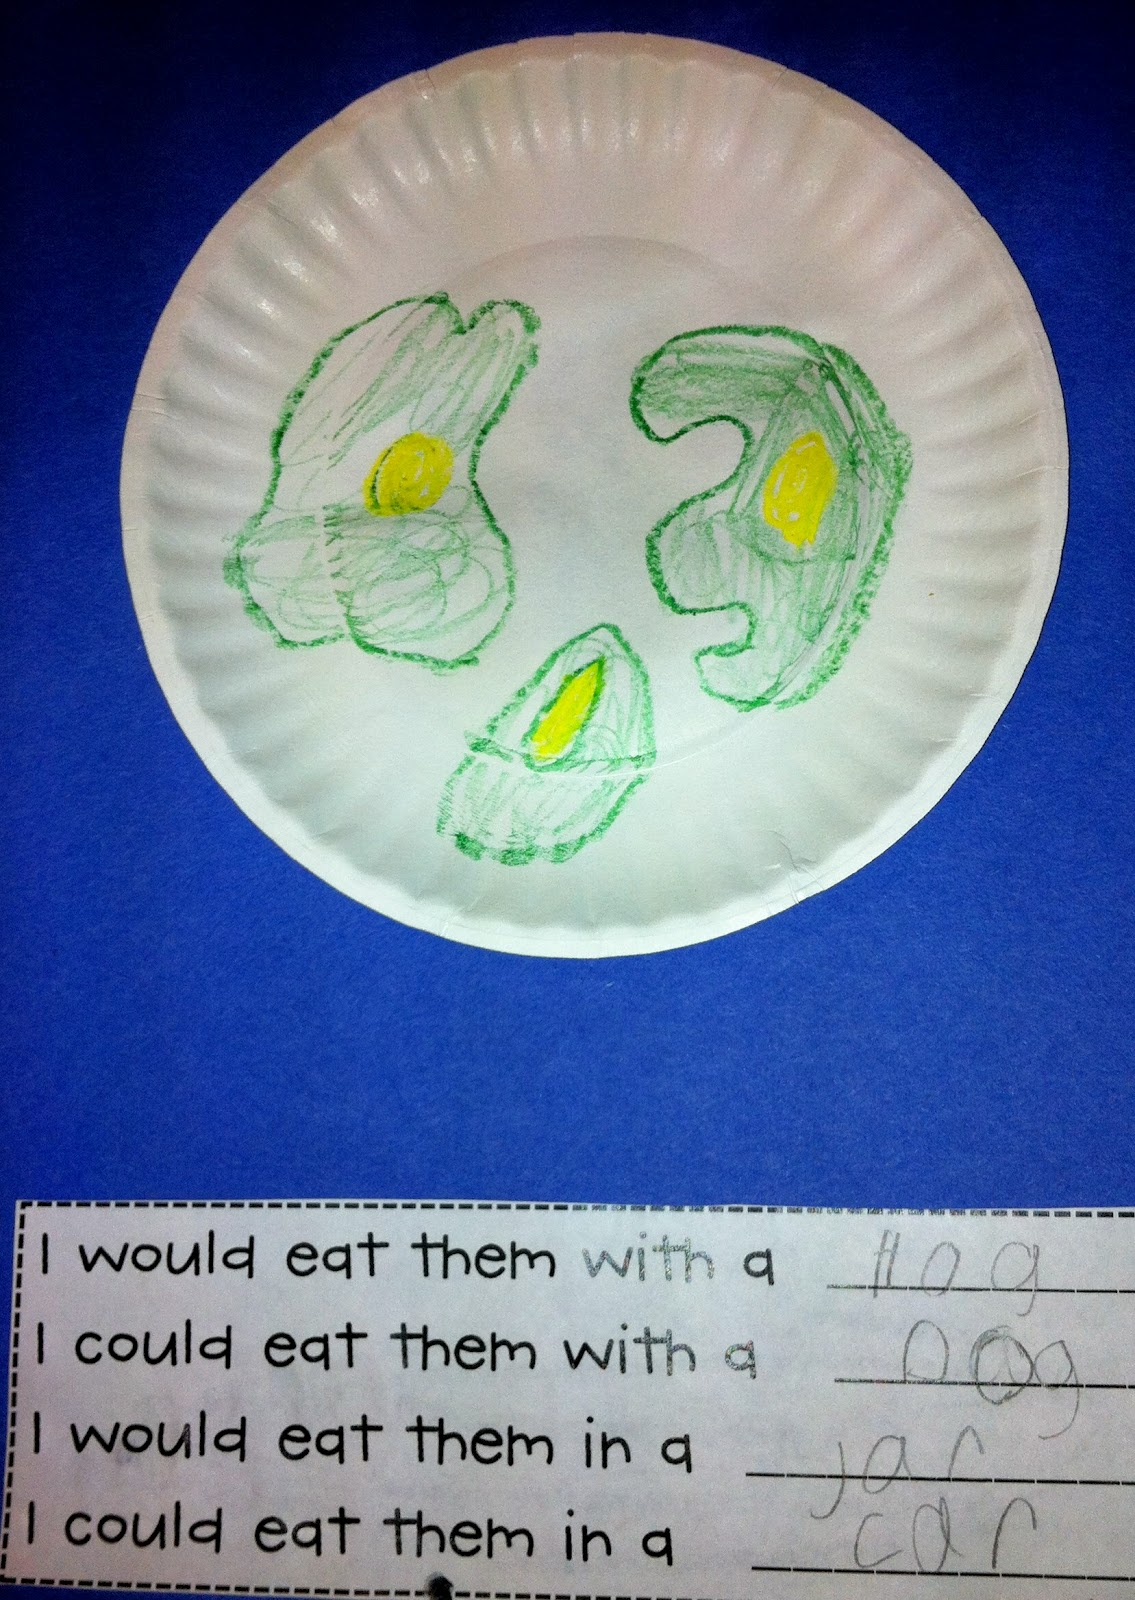 Then, we sampled our very own green eggs and ham!